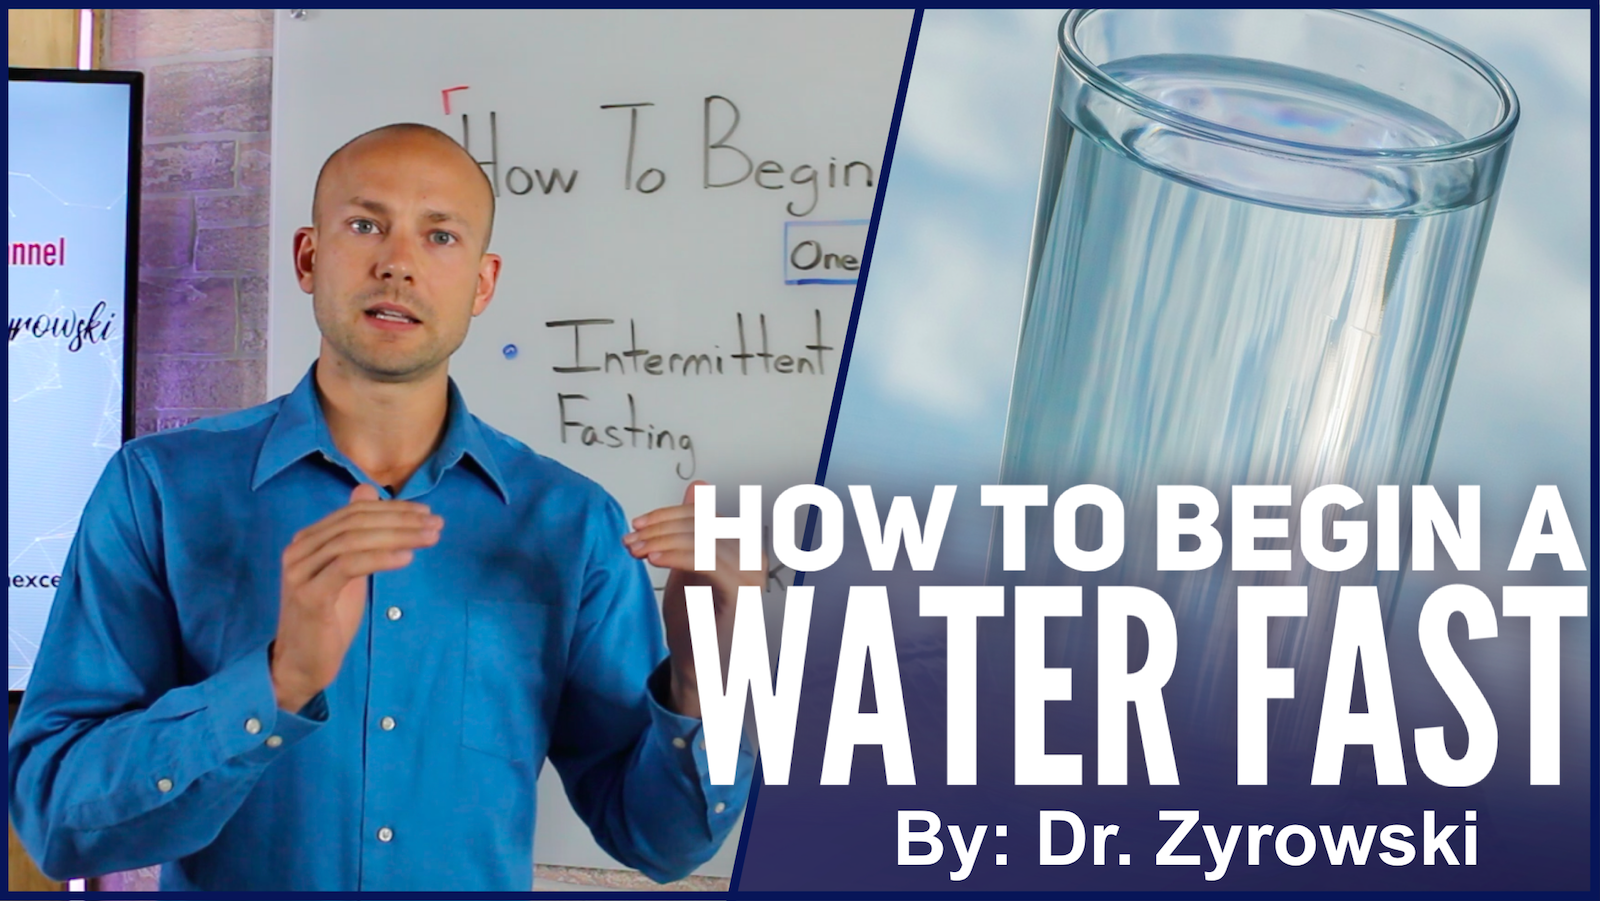 How To Begin A Water Fast